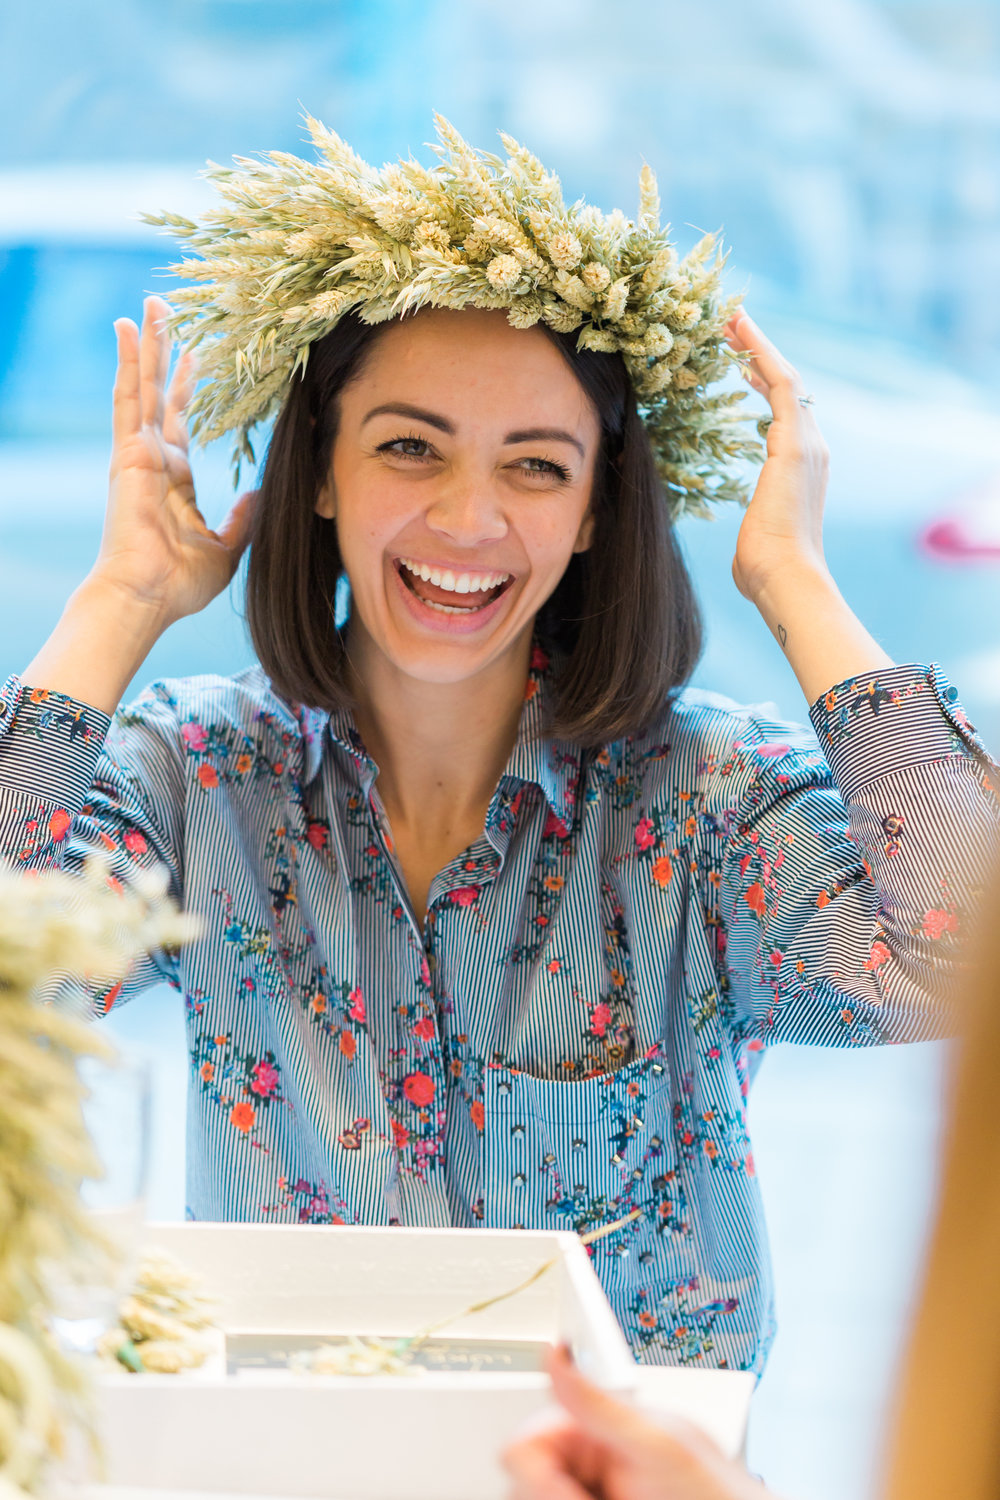 pretty-floral-headpiece.jpg